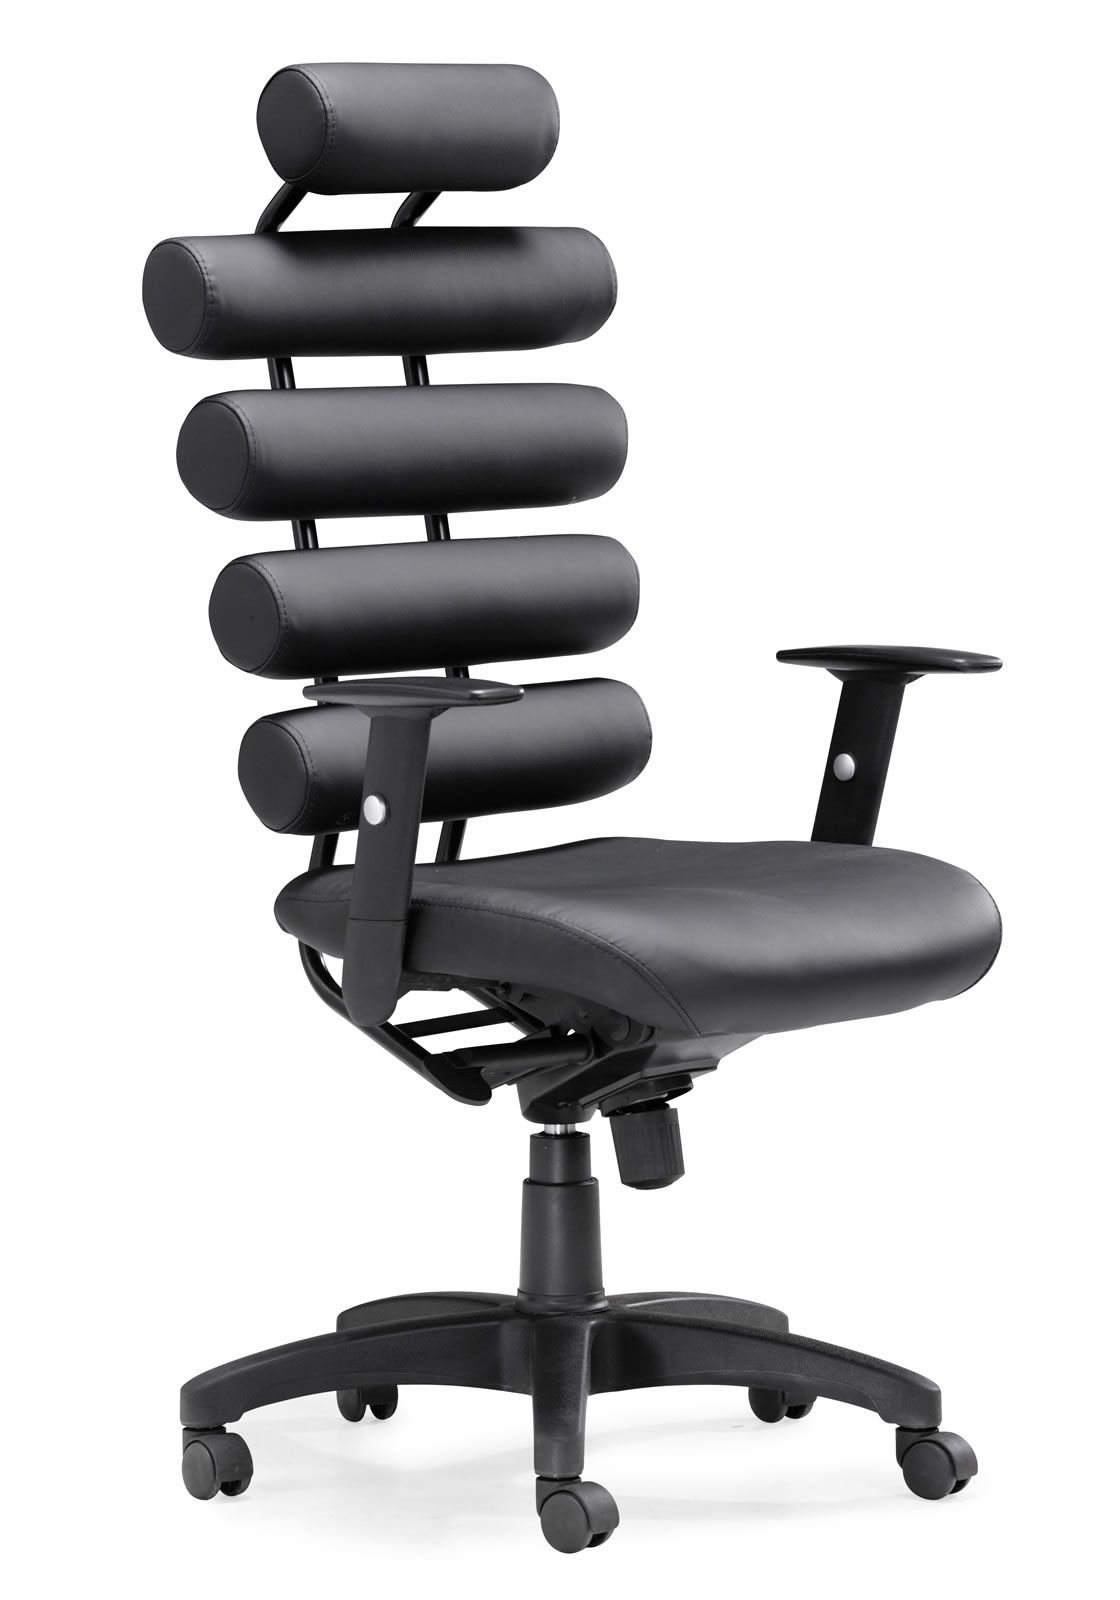 Plush Office Chair This High Back Office Chair Provides The Ultimate In